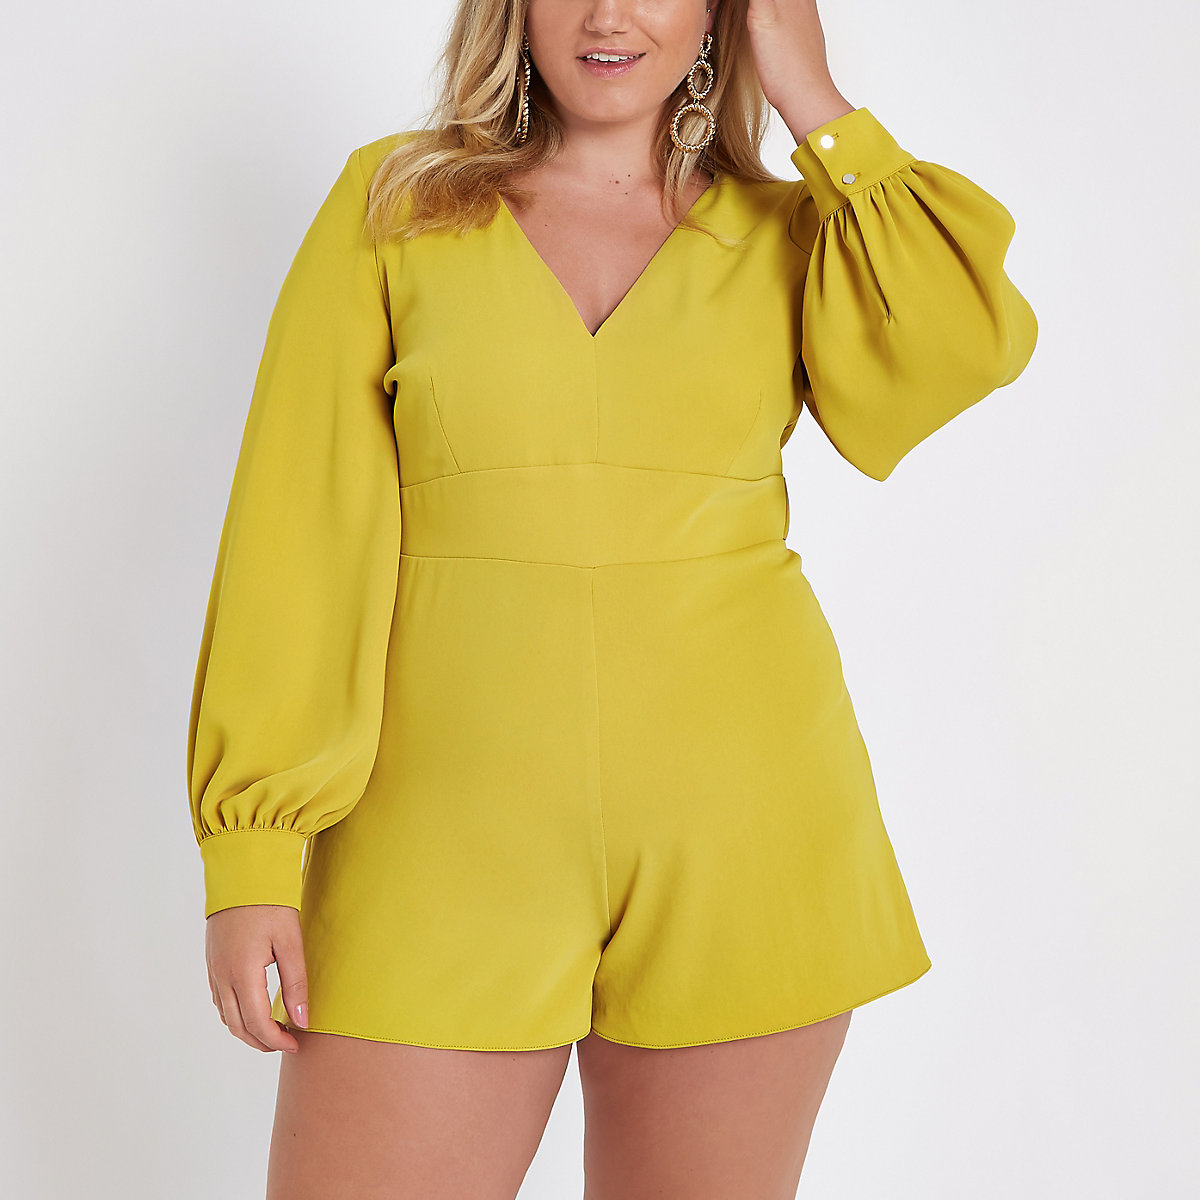 12628a1db5a Plus dark yellow tie waist playsuit - Playsuits - Playsuits   Jumpsuits -  women